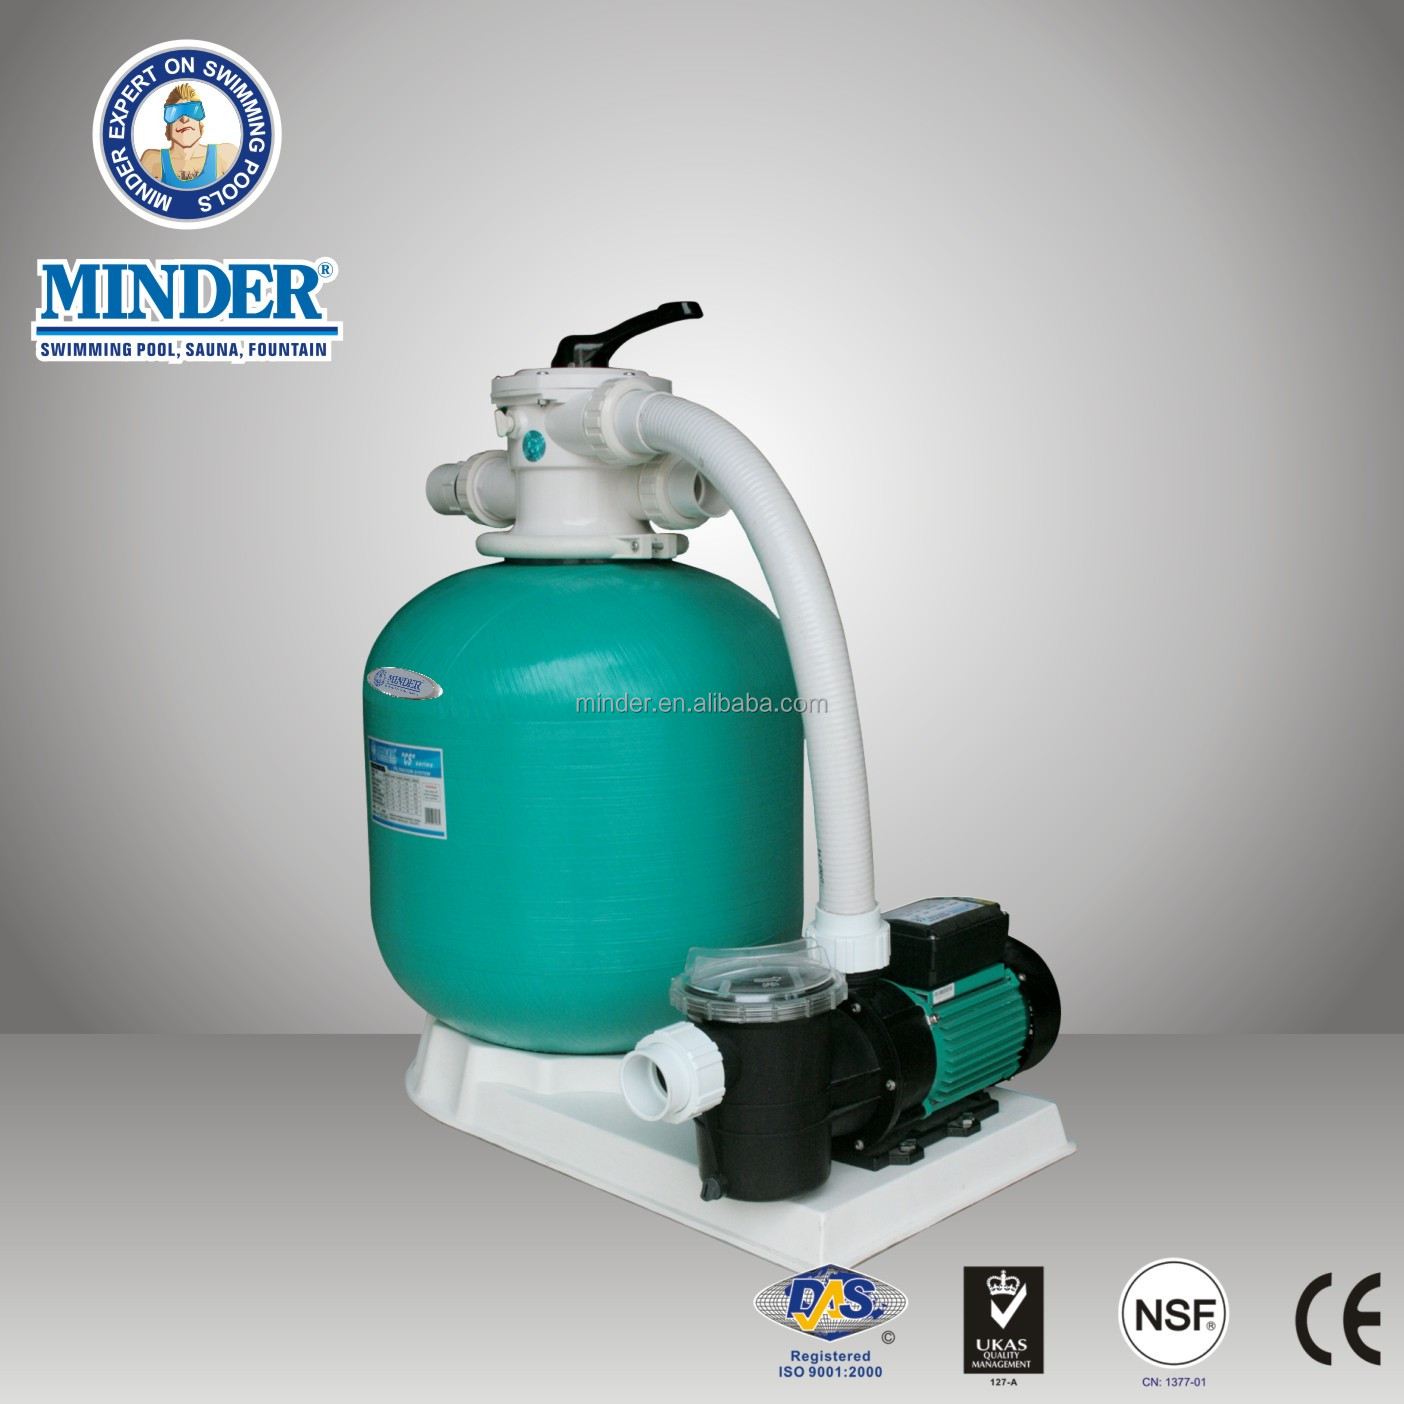 CS Swimming Pool tank sand filter sand filter and 1.5Inch Valve Swimming Pool Sand Filter